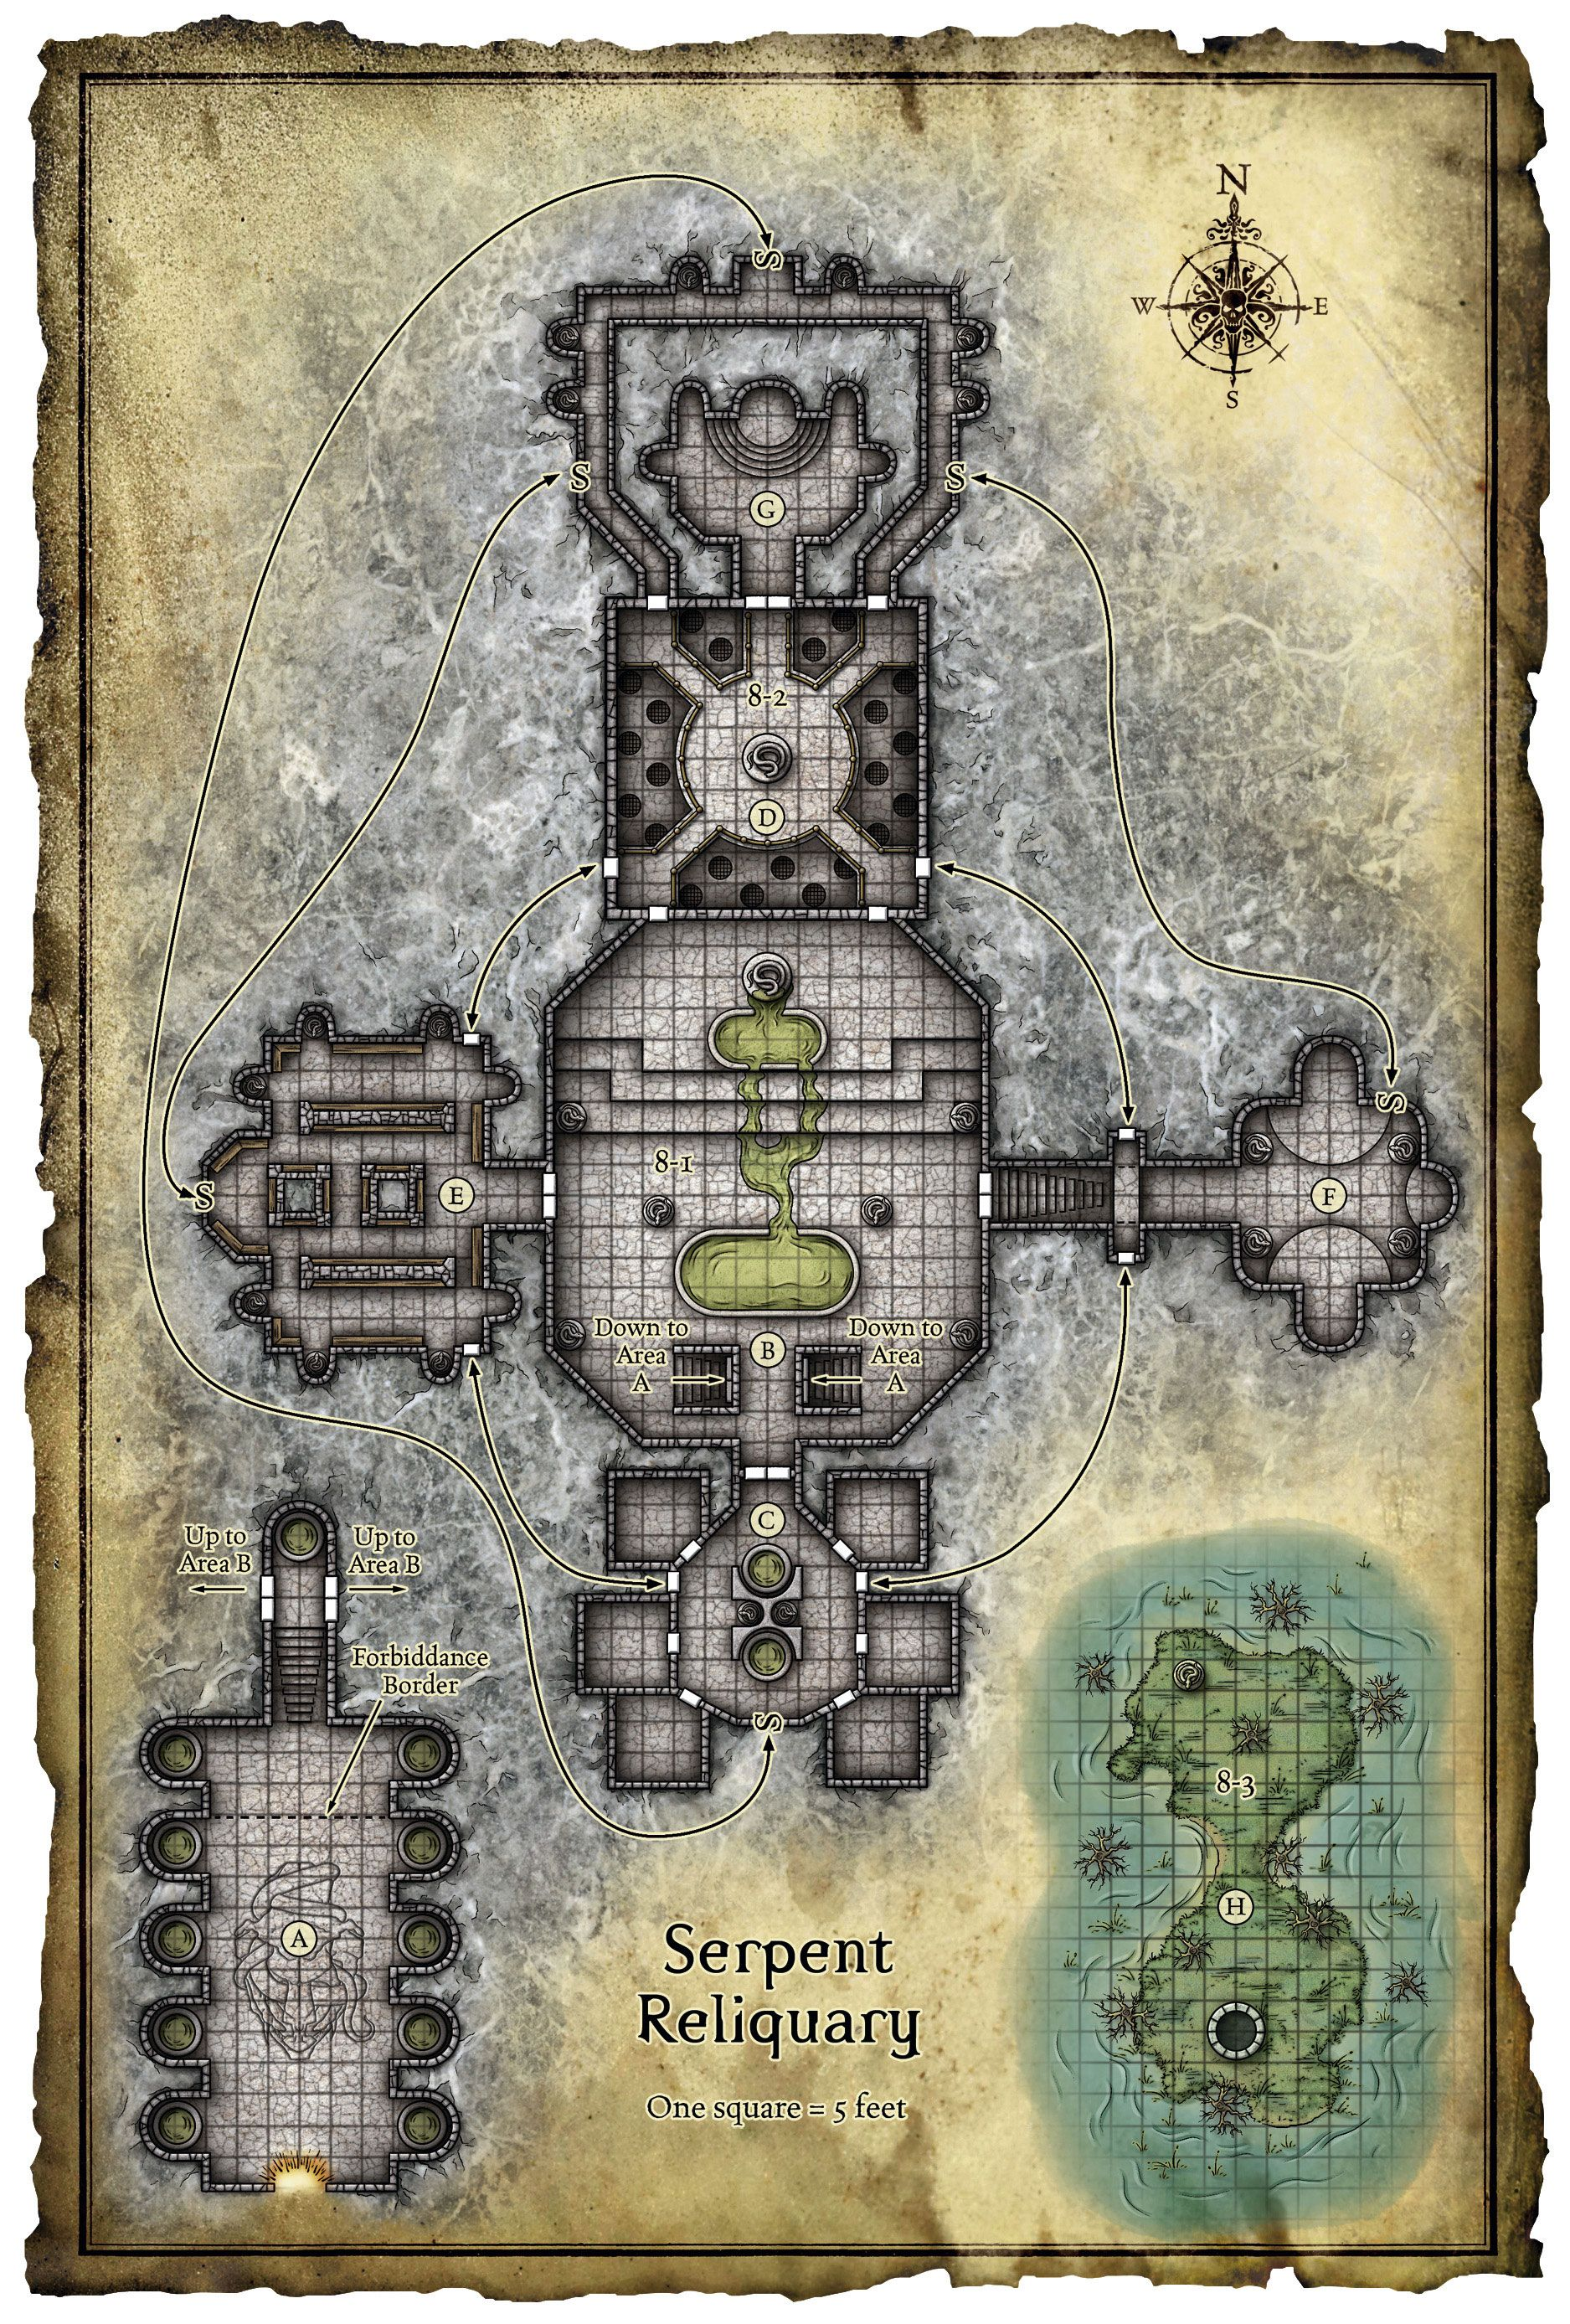 Dungeon Http://www.wizards.com/dnd/images/ElderEvils_Maps